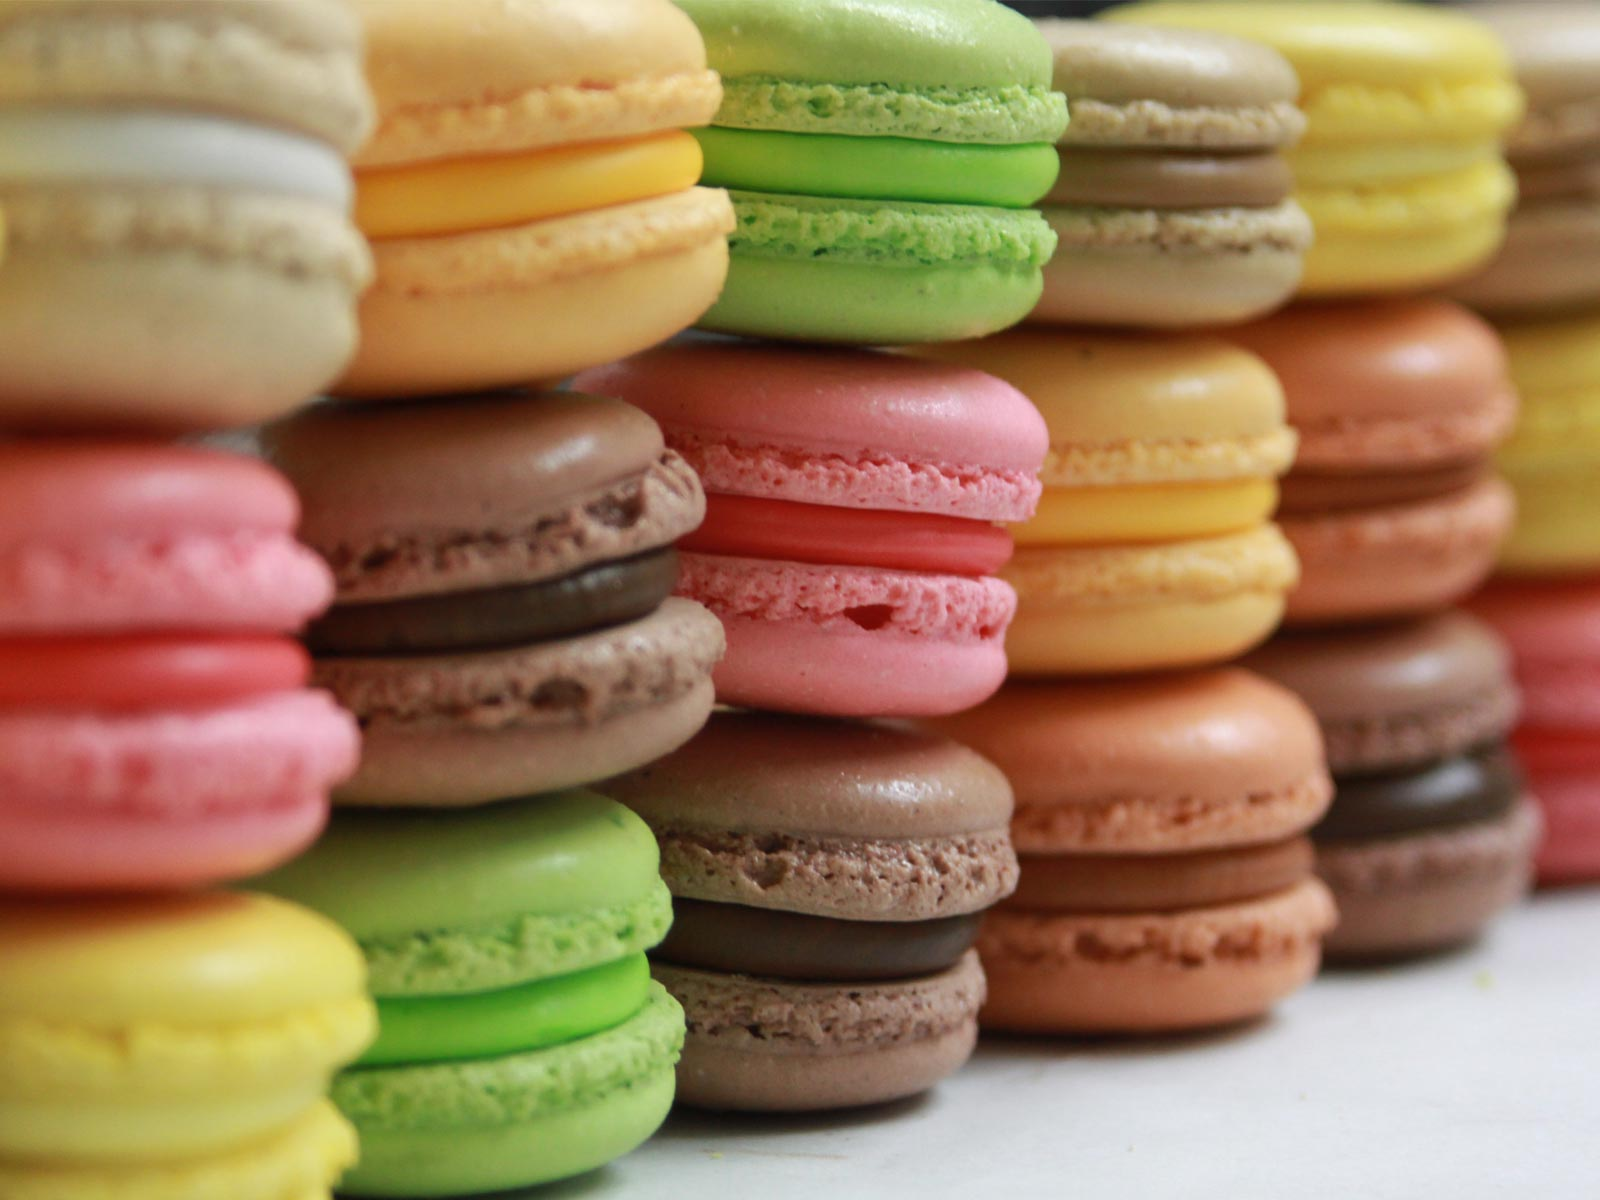 macarons den store bagedyst